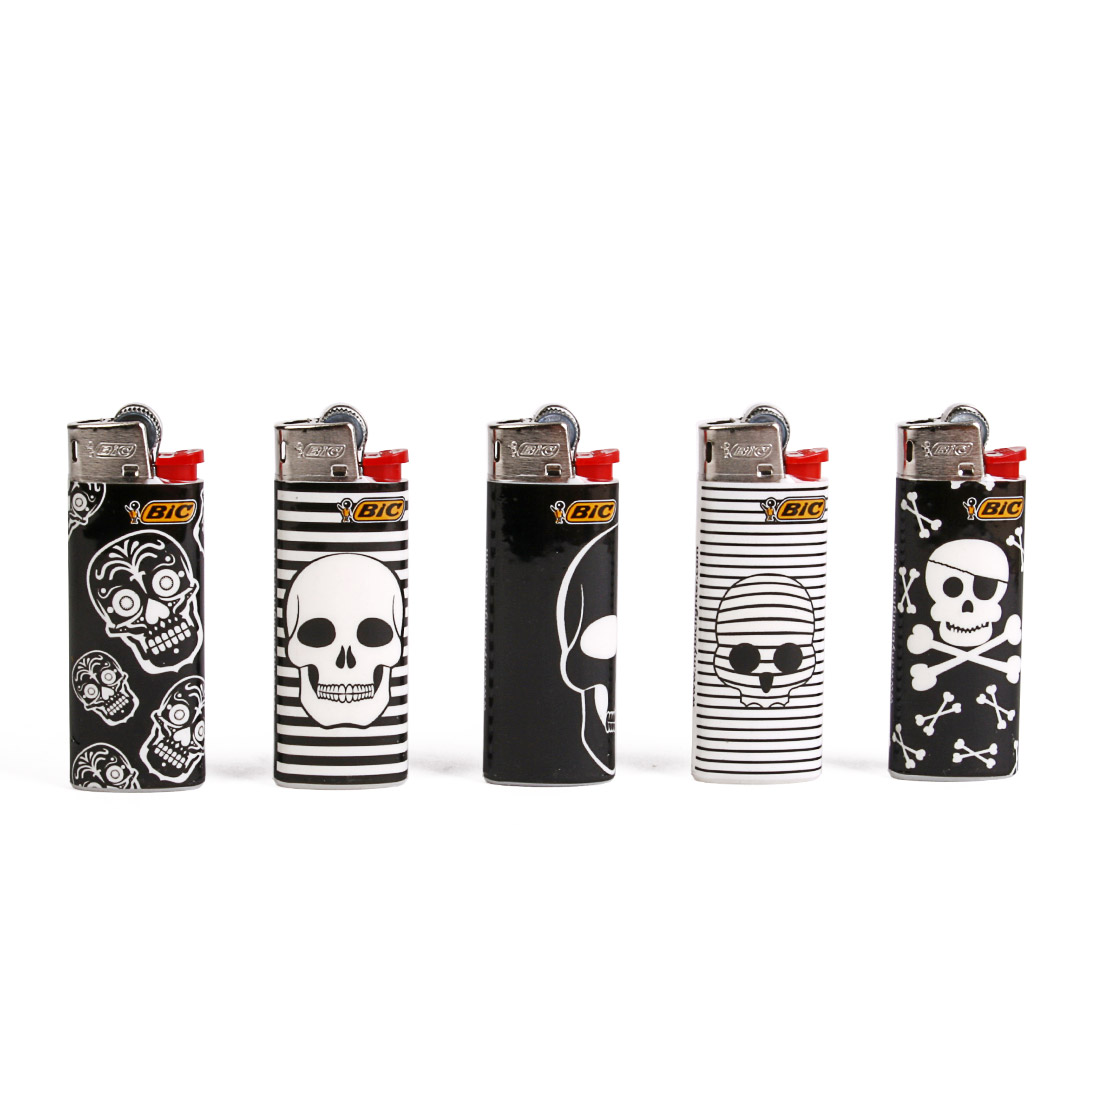 briquet mini gameland